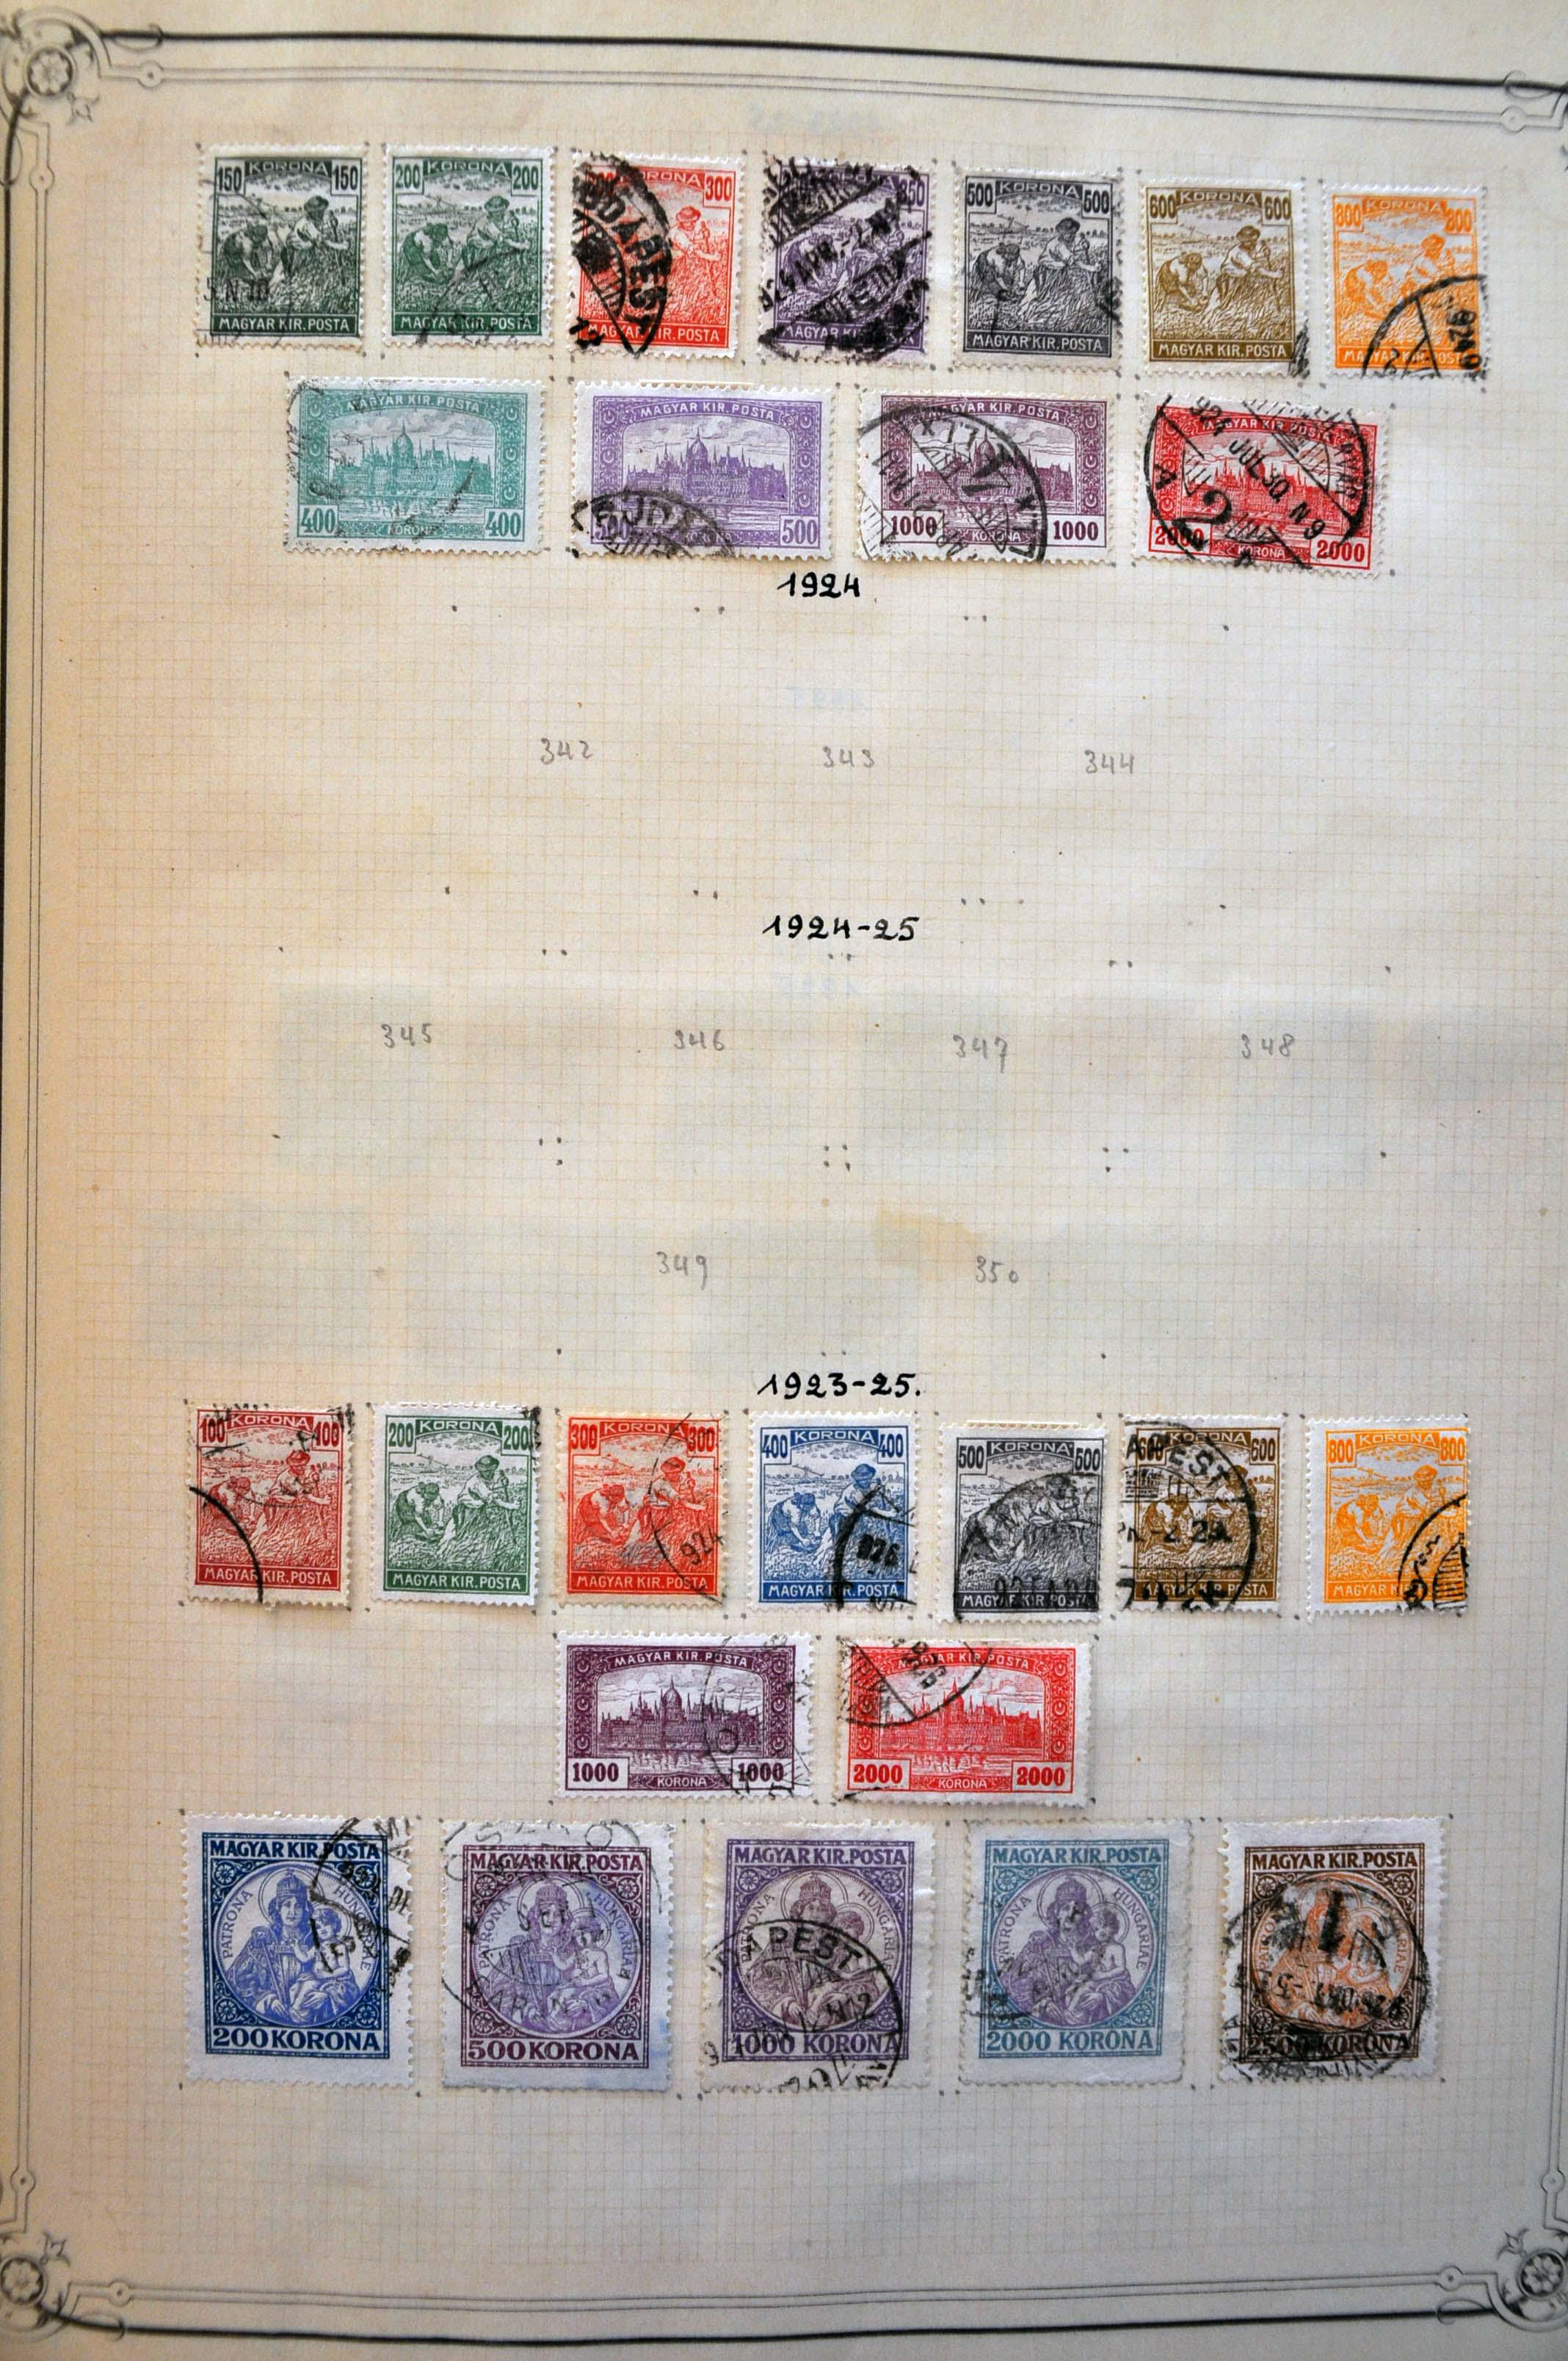 Lot 3334 - European Countries European Countries -  Corinphila Veilingen Auction 237 Part 2: General sale